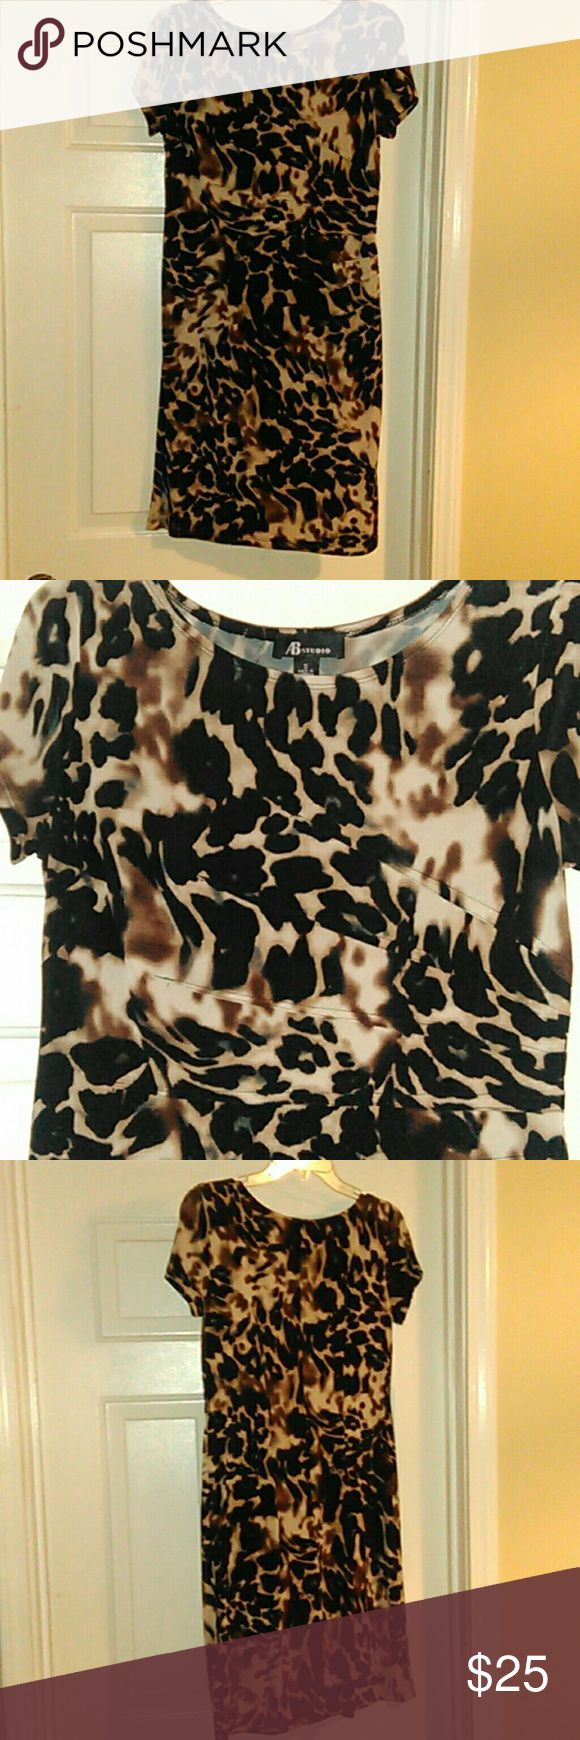 Animal print dress Short sleeve dress by AB Studio  Very flattering details on left side of dress runs across torso area  95% polyester/5% spandex  Size small fits like 6-8 AB Studio Dresses